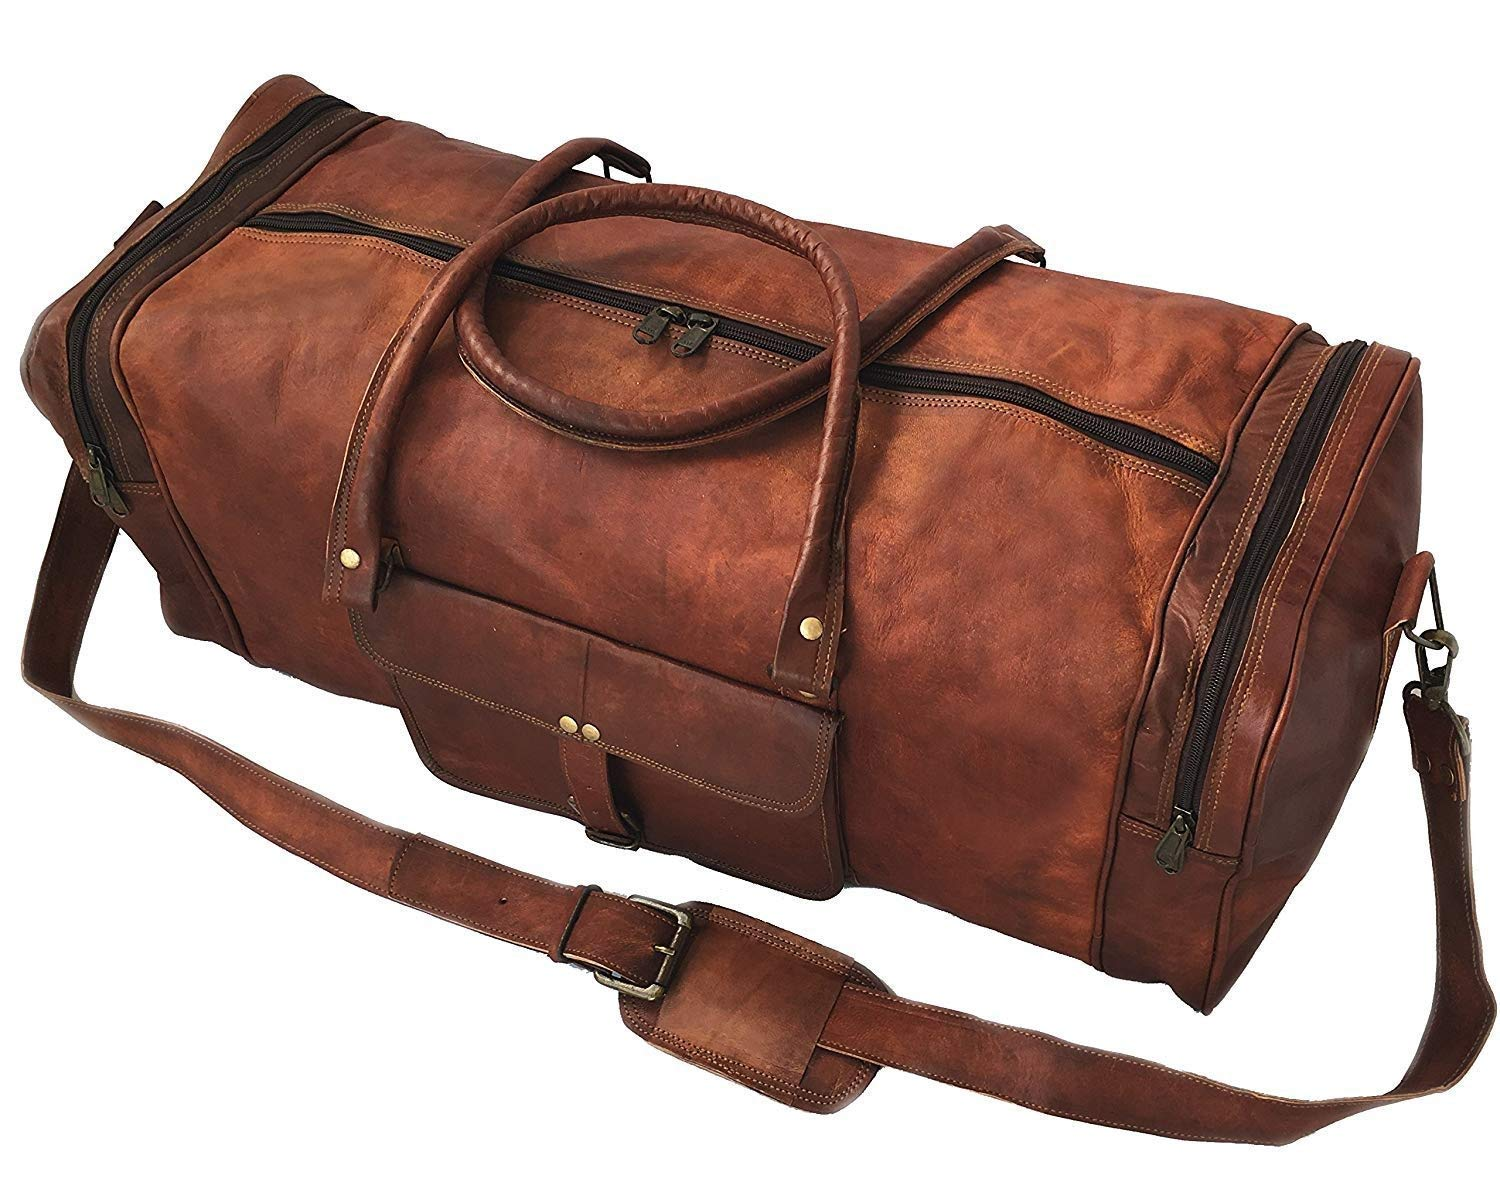 a666c37e0d Amazon.com  24 Inch Square Duffel Travel Gym Sports Overnight Weekend  Leather Bag  Computers   Accessories